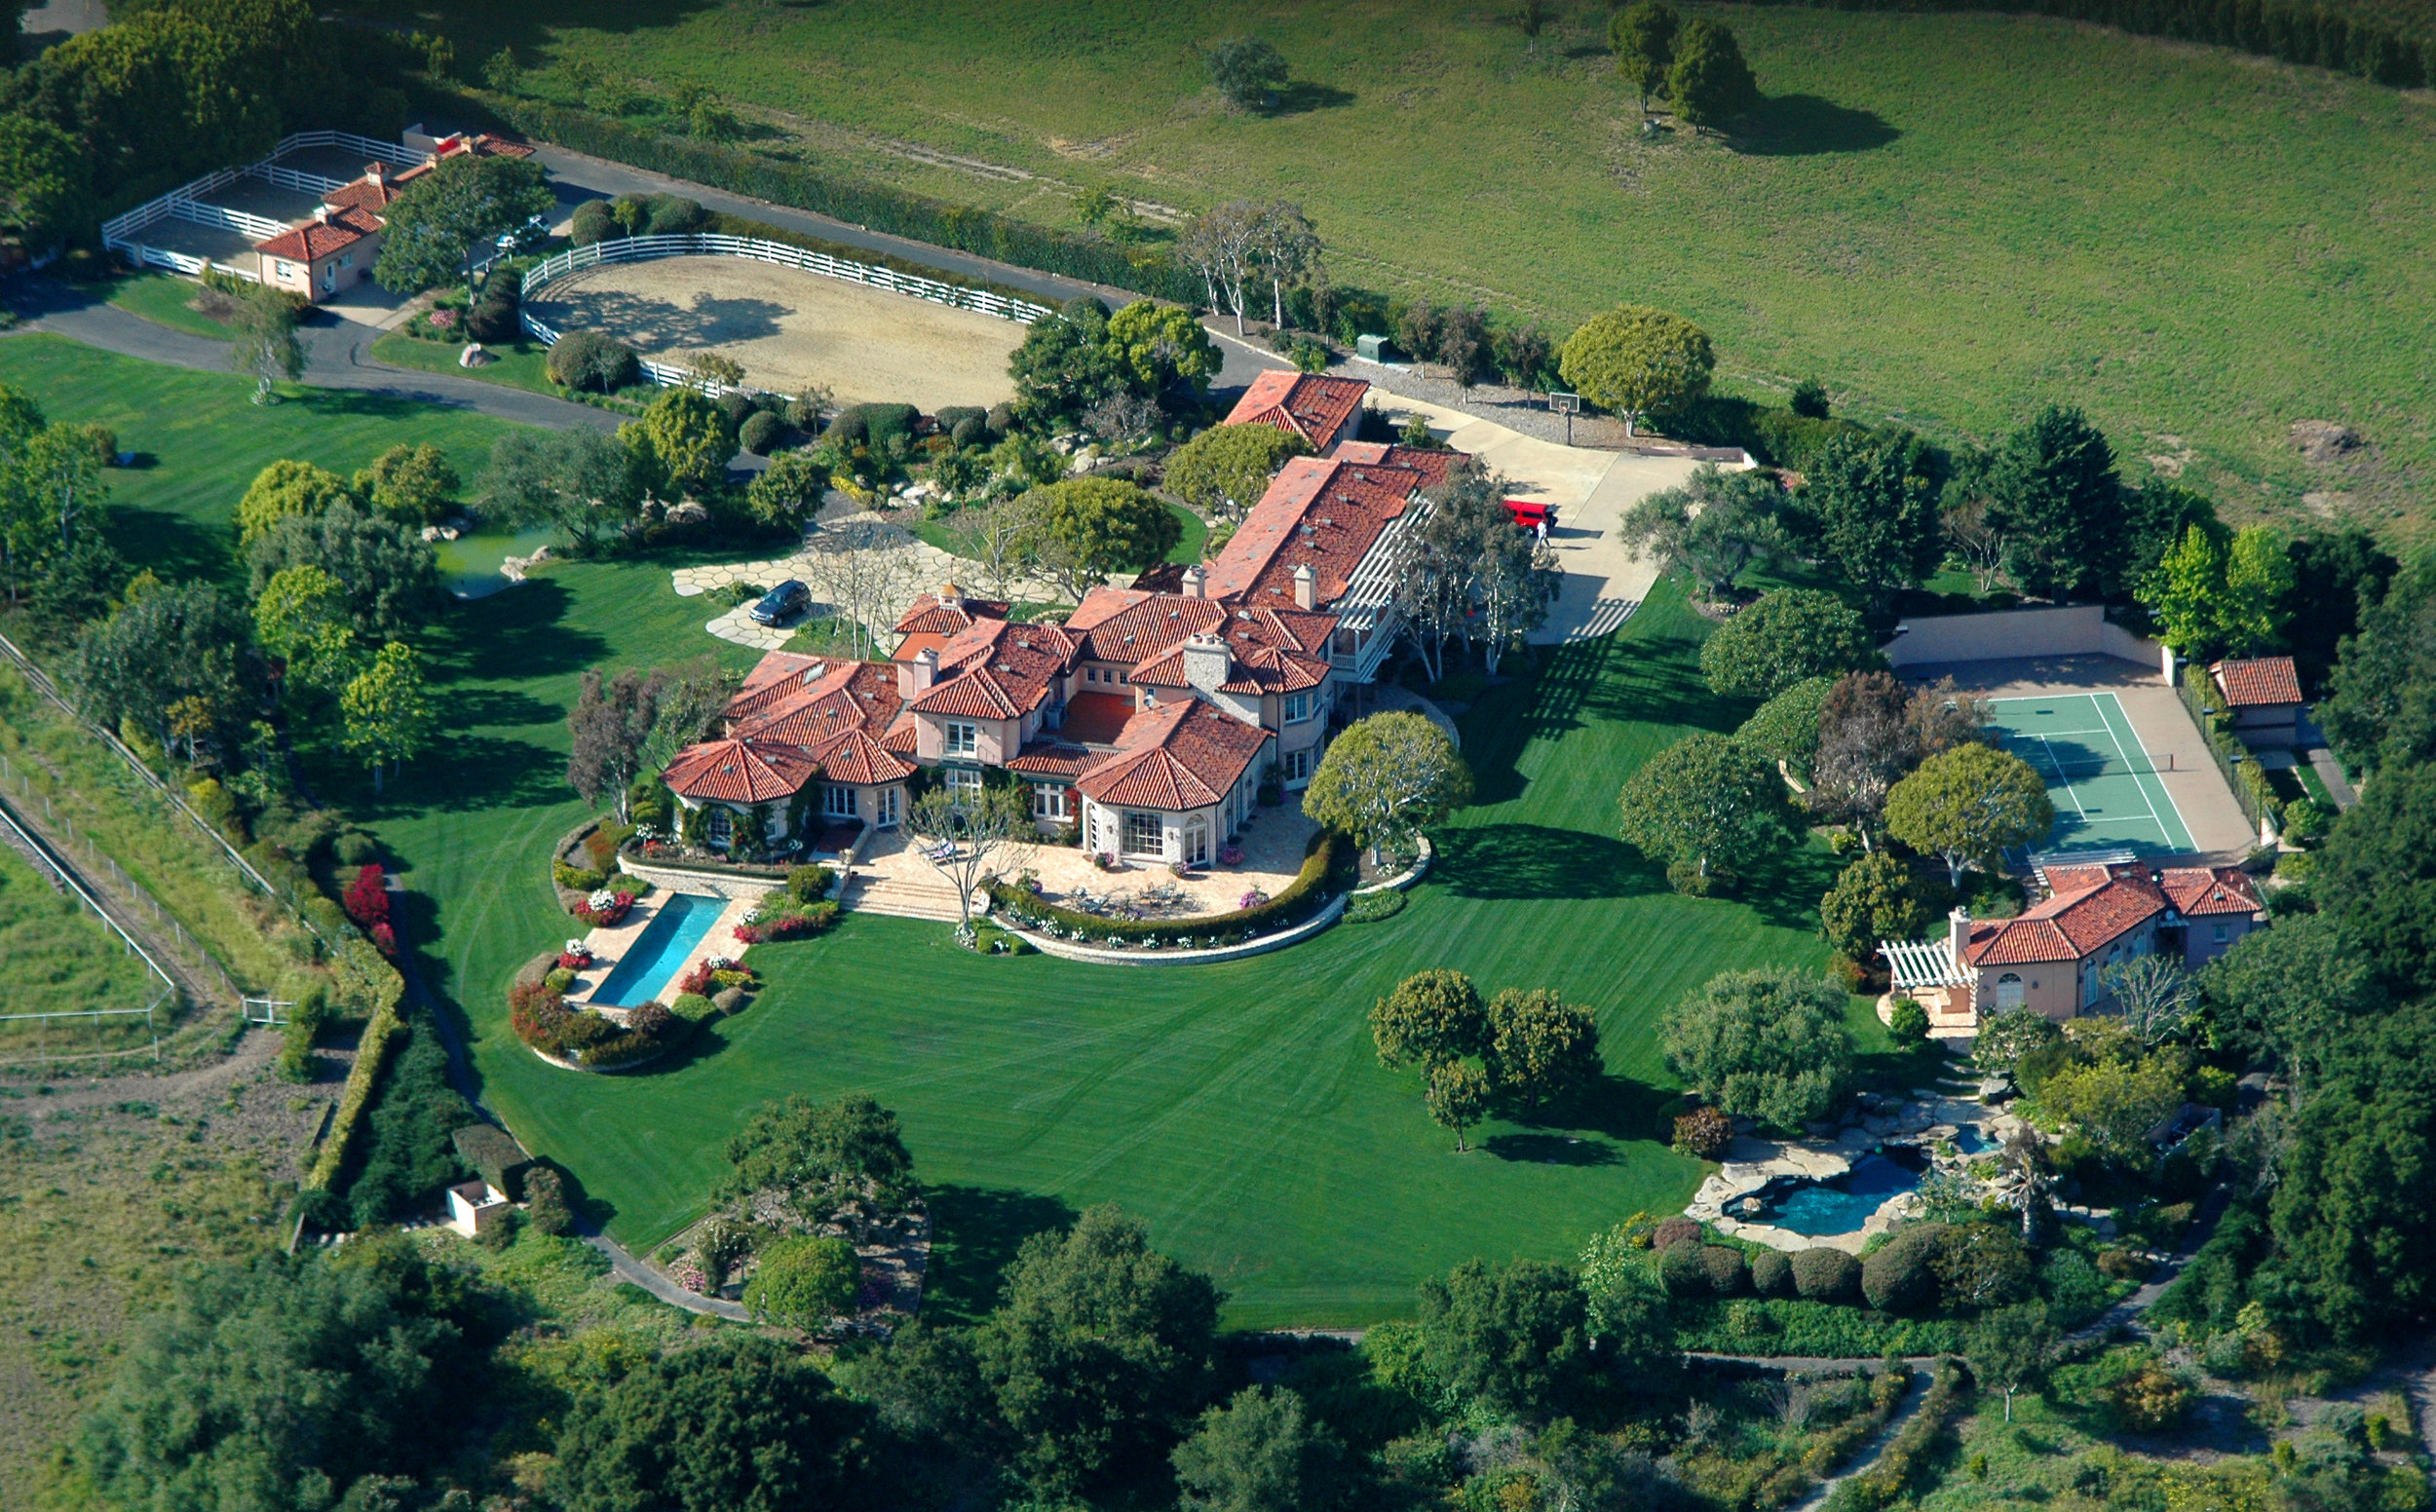 Enchanting French Country Estate, Hope Ranch   |   offered at $14,900,000   |   click photo to learn more